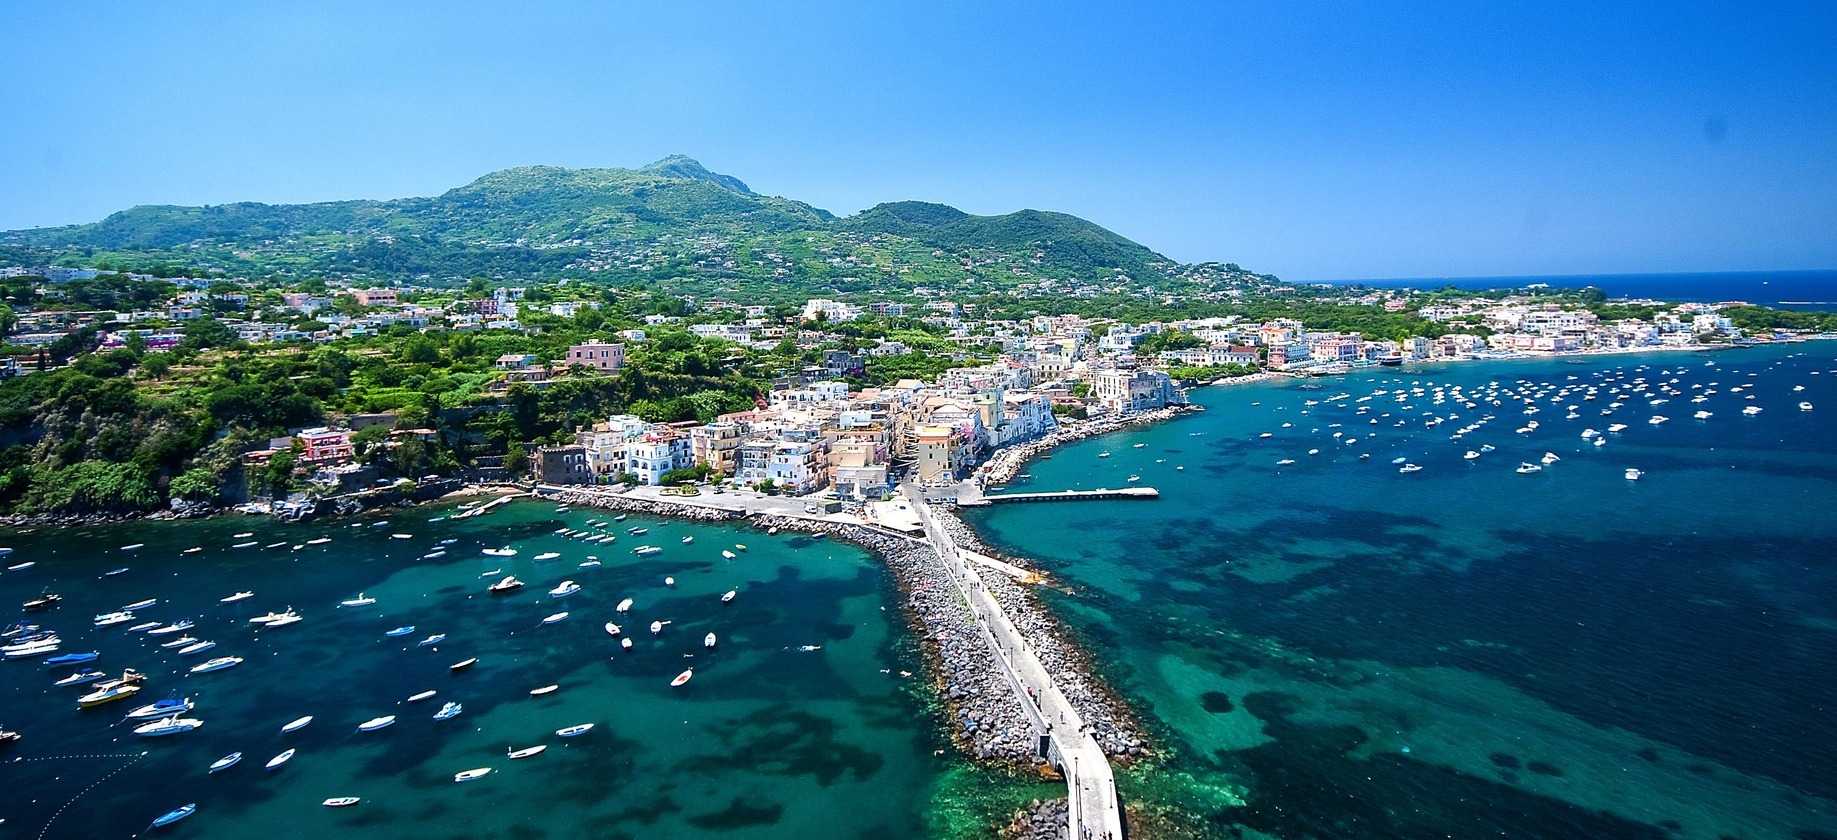 sorrento italy map with Ischia Tour on Attraction Review G194863 D2480900 Reviews Private Day Tours Positano Amalfi Coast C ania in addition Roman Forum Rome Italy additionally Calabria Tourist Map also Carte geographique italiepag further Salo.